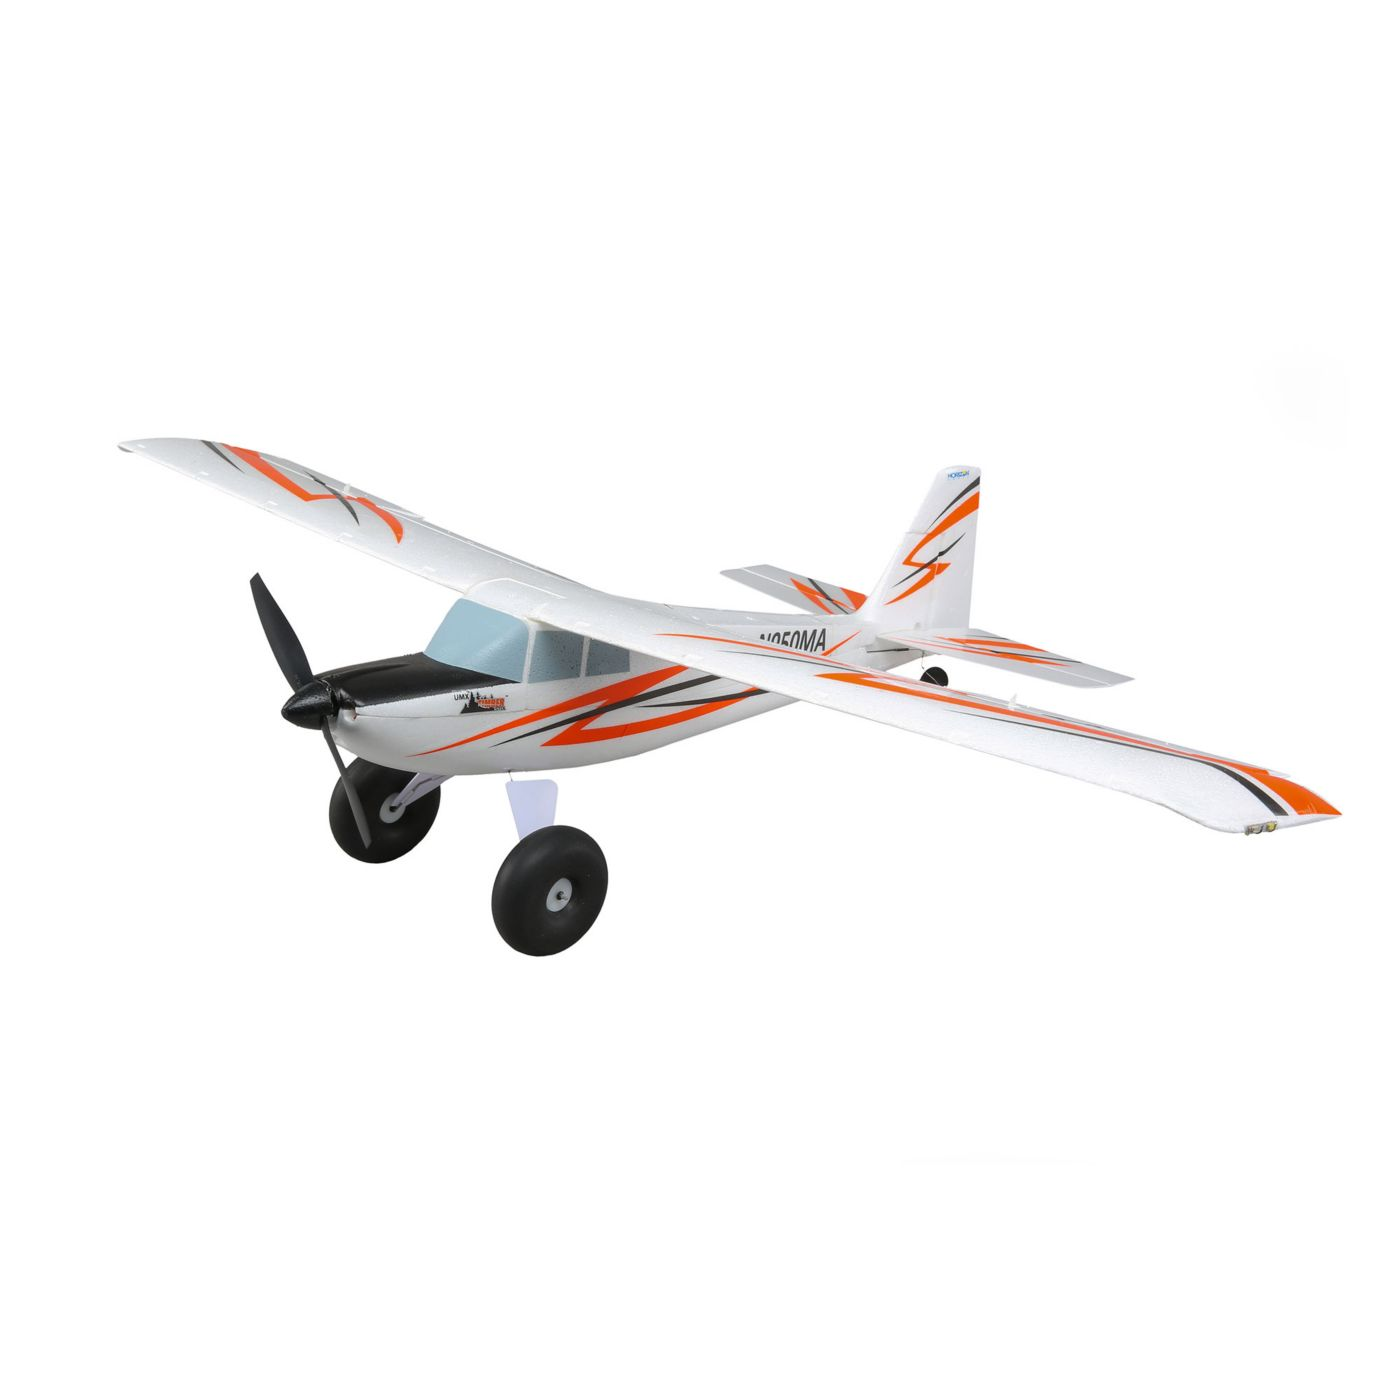 E Flite Umx Timber Bnf Basic Ultra Micro Sport Rc Airplane Horizon Diagram Components Of An Aircraft Categories